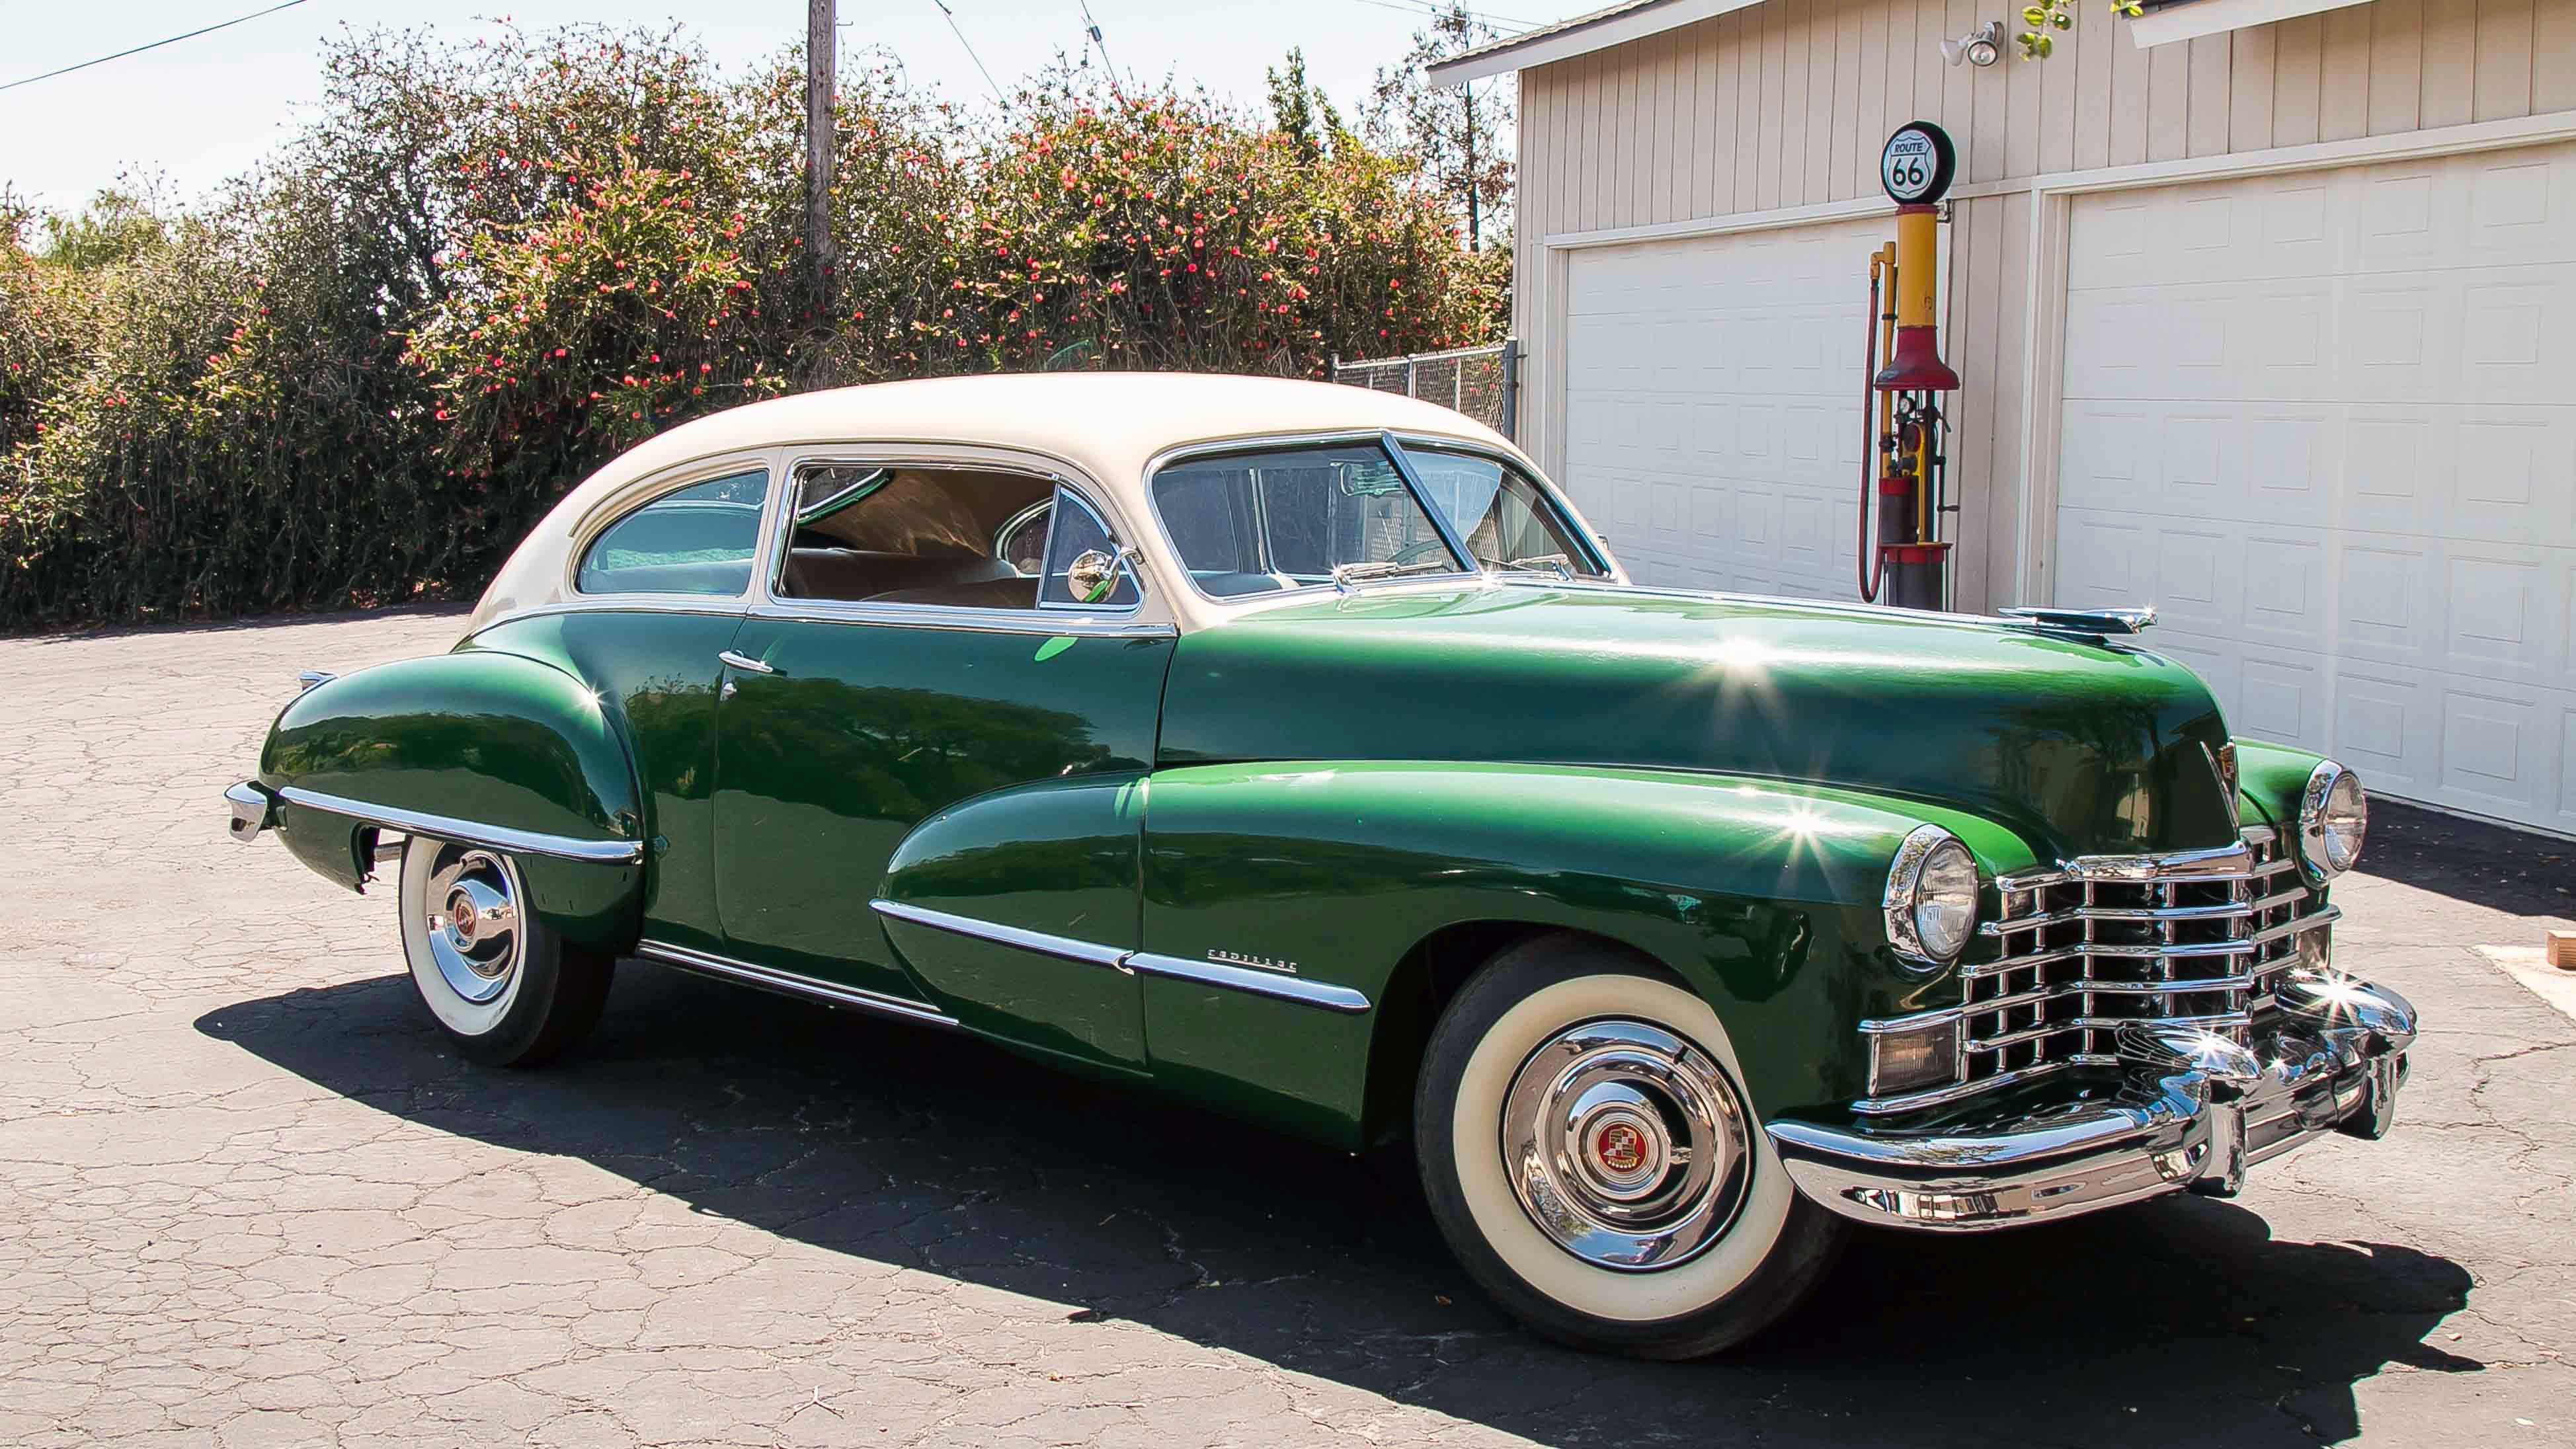 1946 Cadillac Series 62 Coupe Classic Old Retro Vintage ...  1946 Cadillac S...